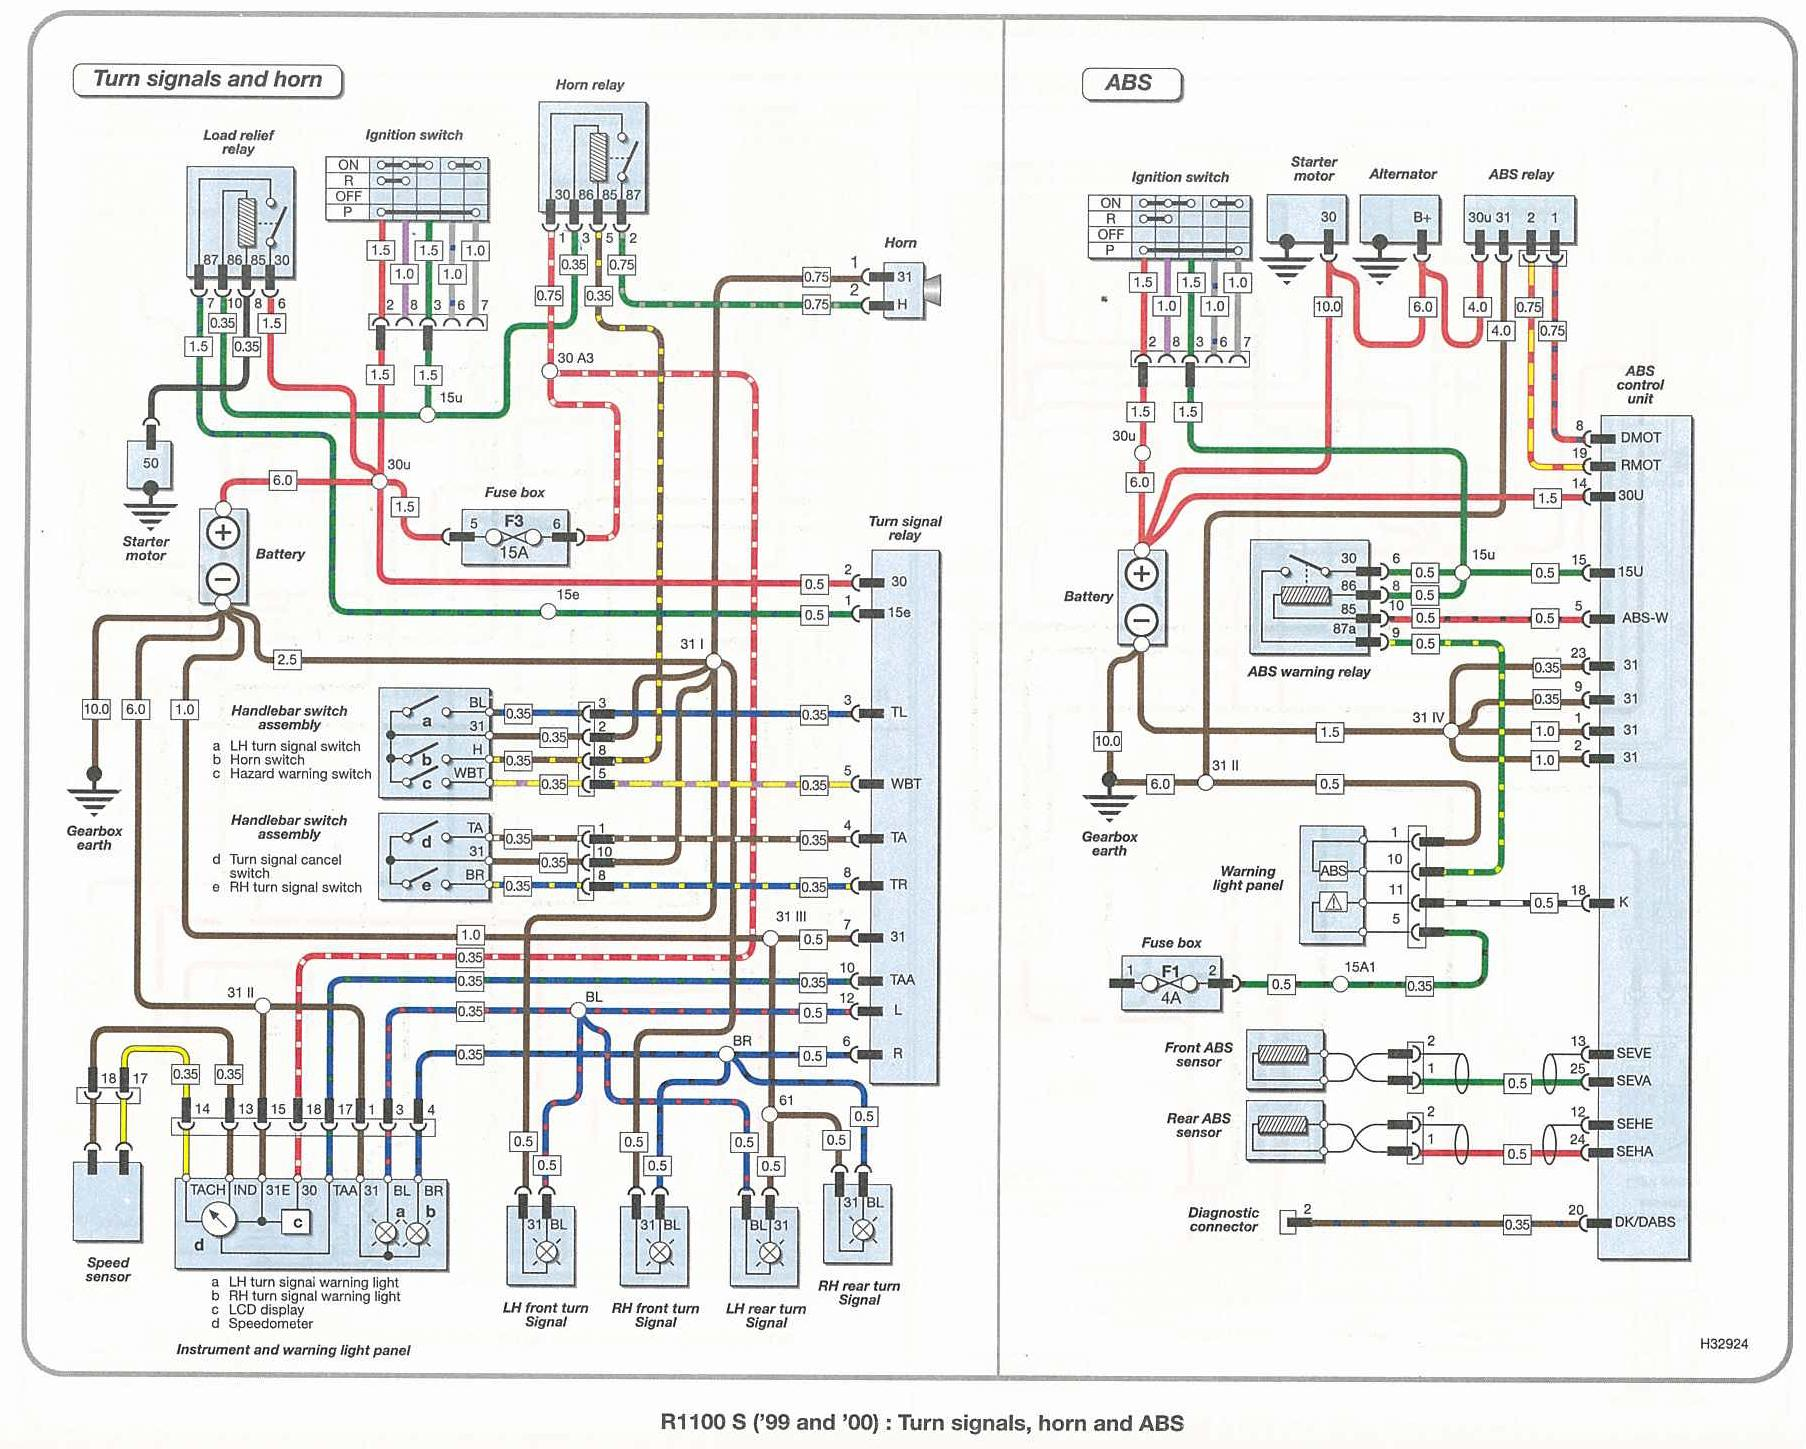 Bmw r1100s wiring diagrams swarovskicordoba